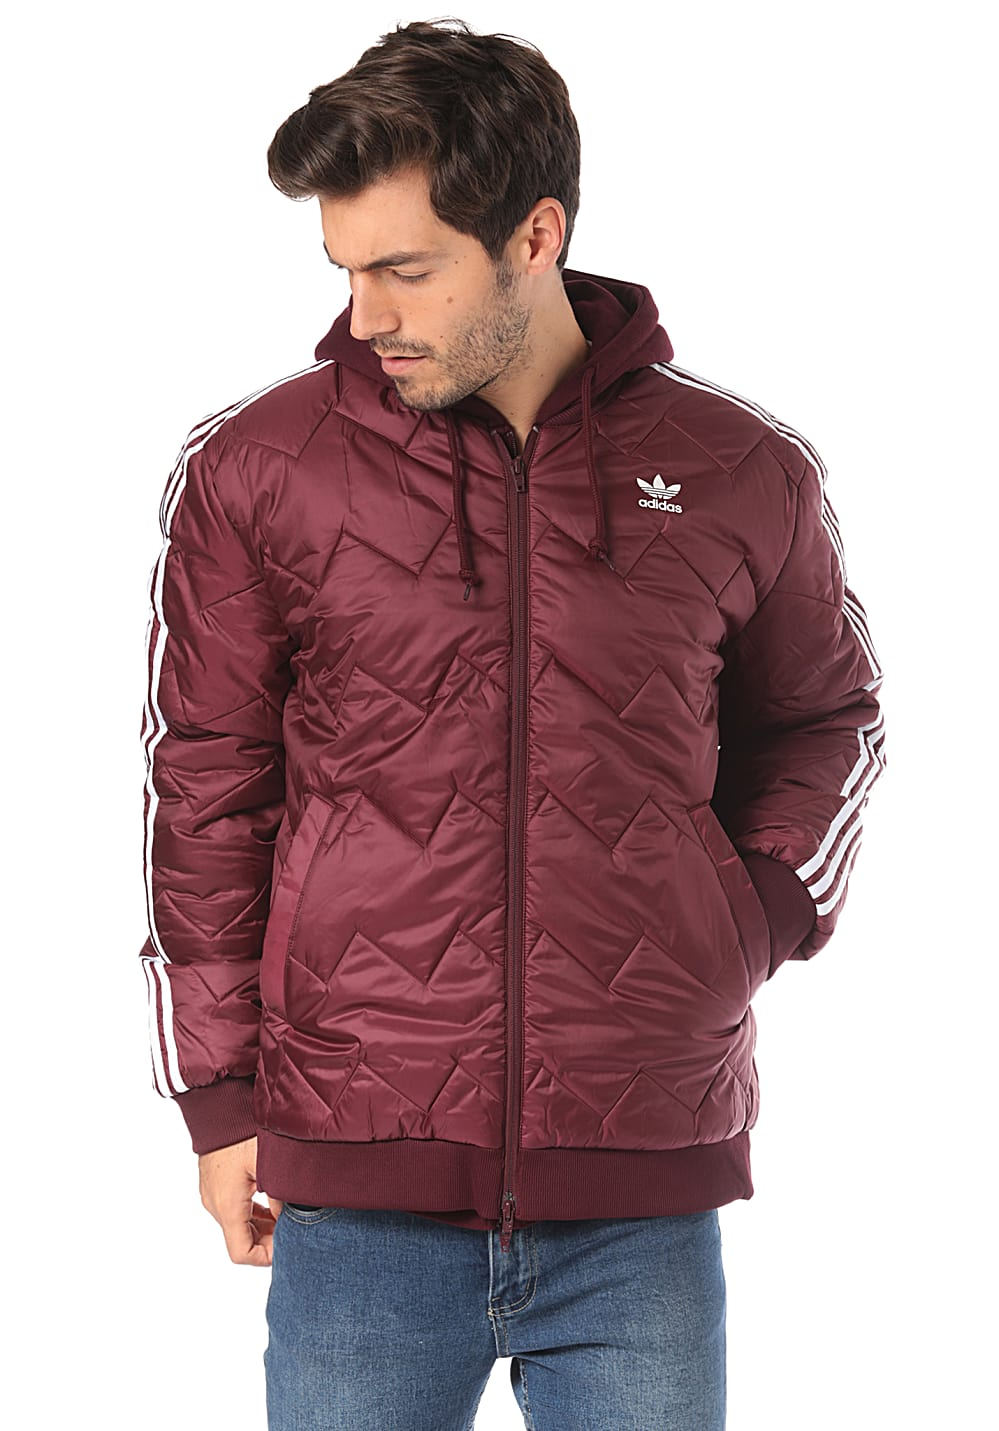 Per Giacca Planet Sst Originals Quilted Adidas Rosso Sports Uomo twCIS0Pq